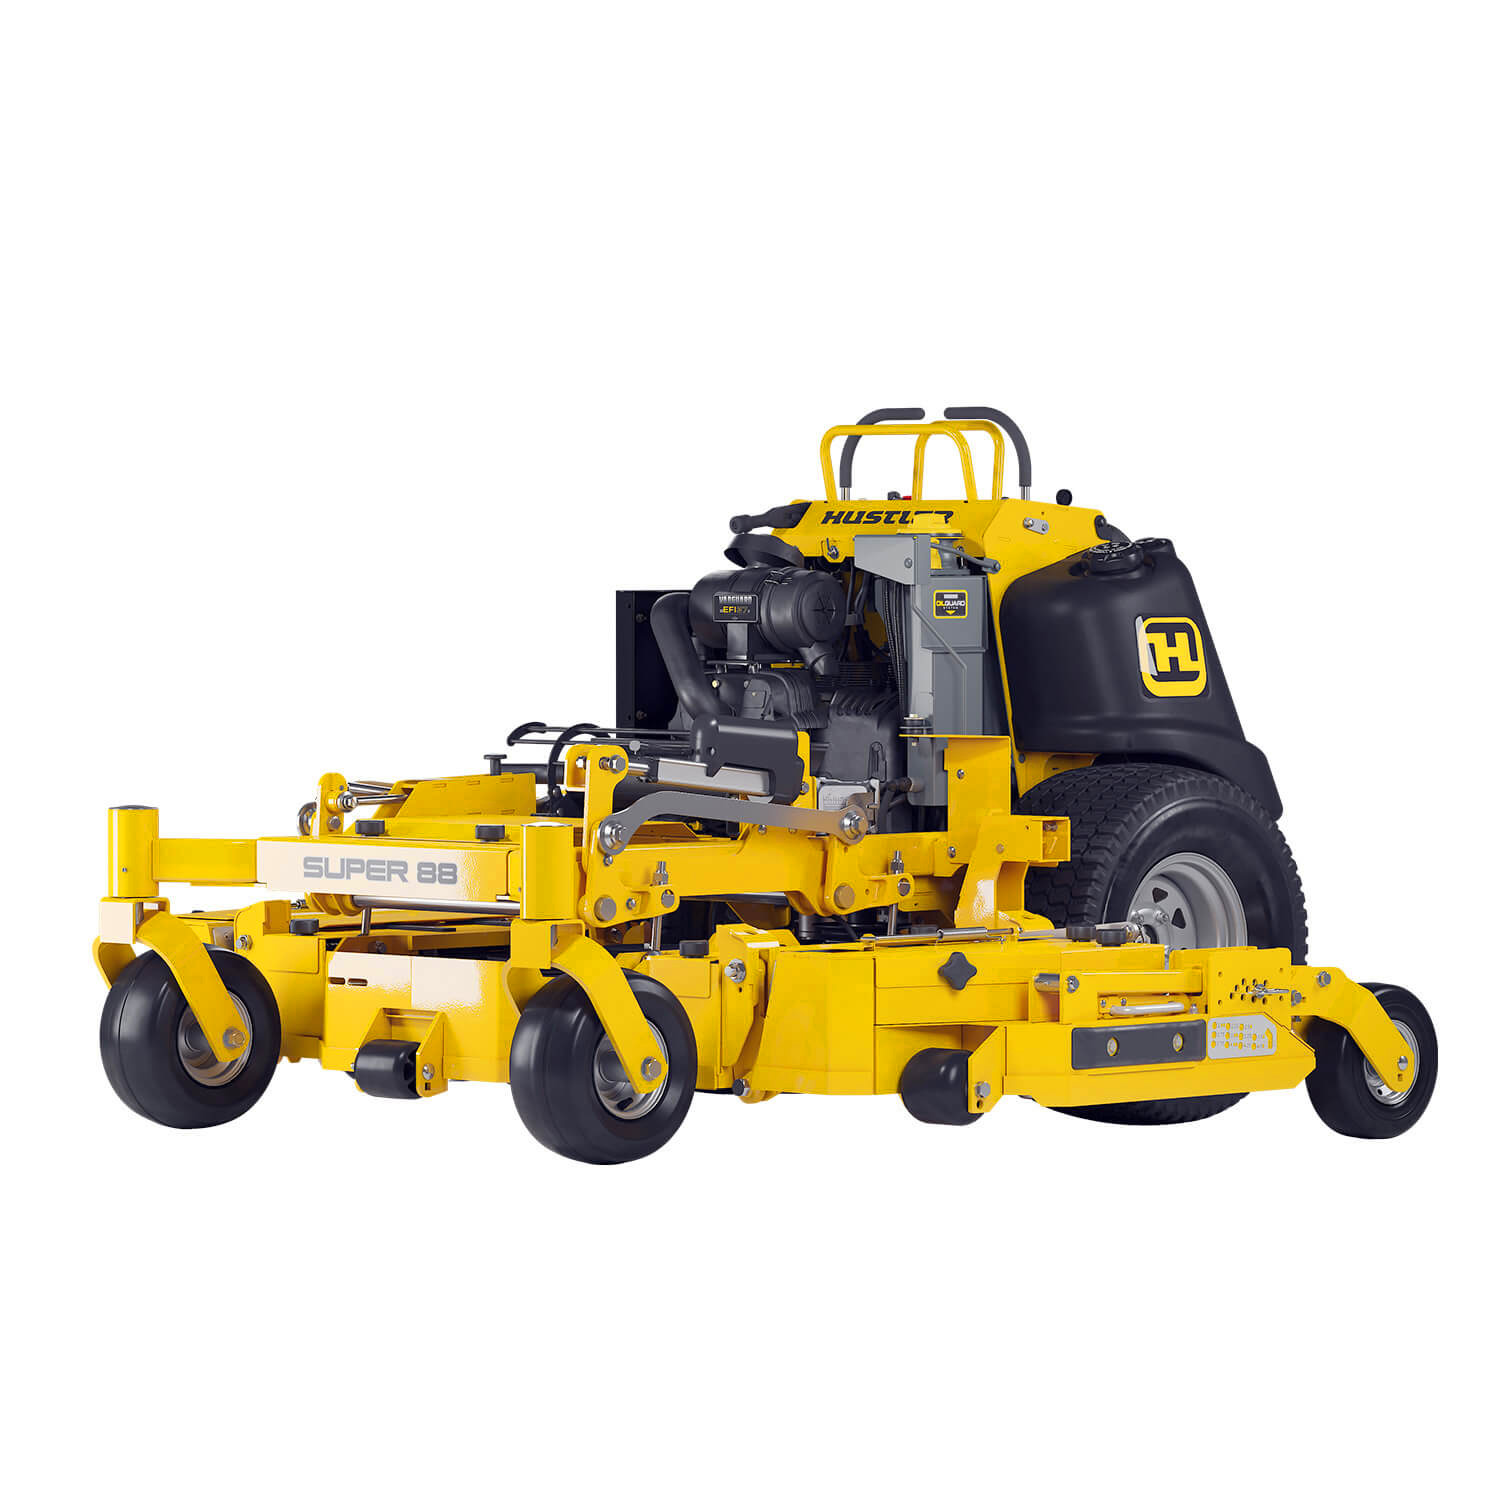 Image of the profile of a yellow stand-on mower